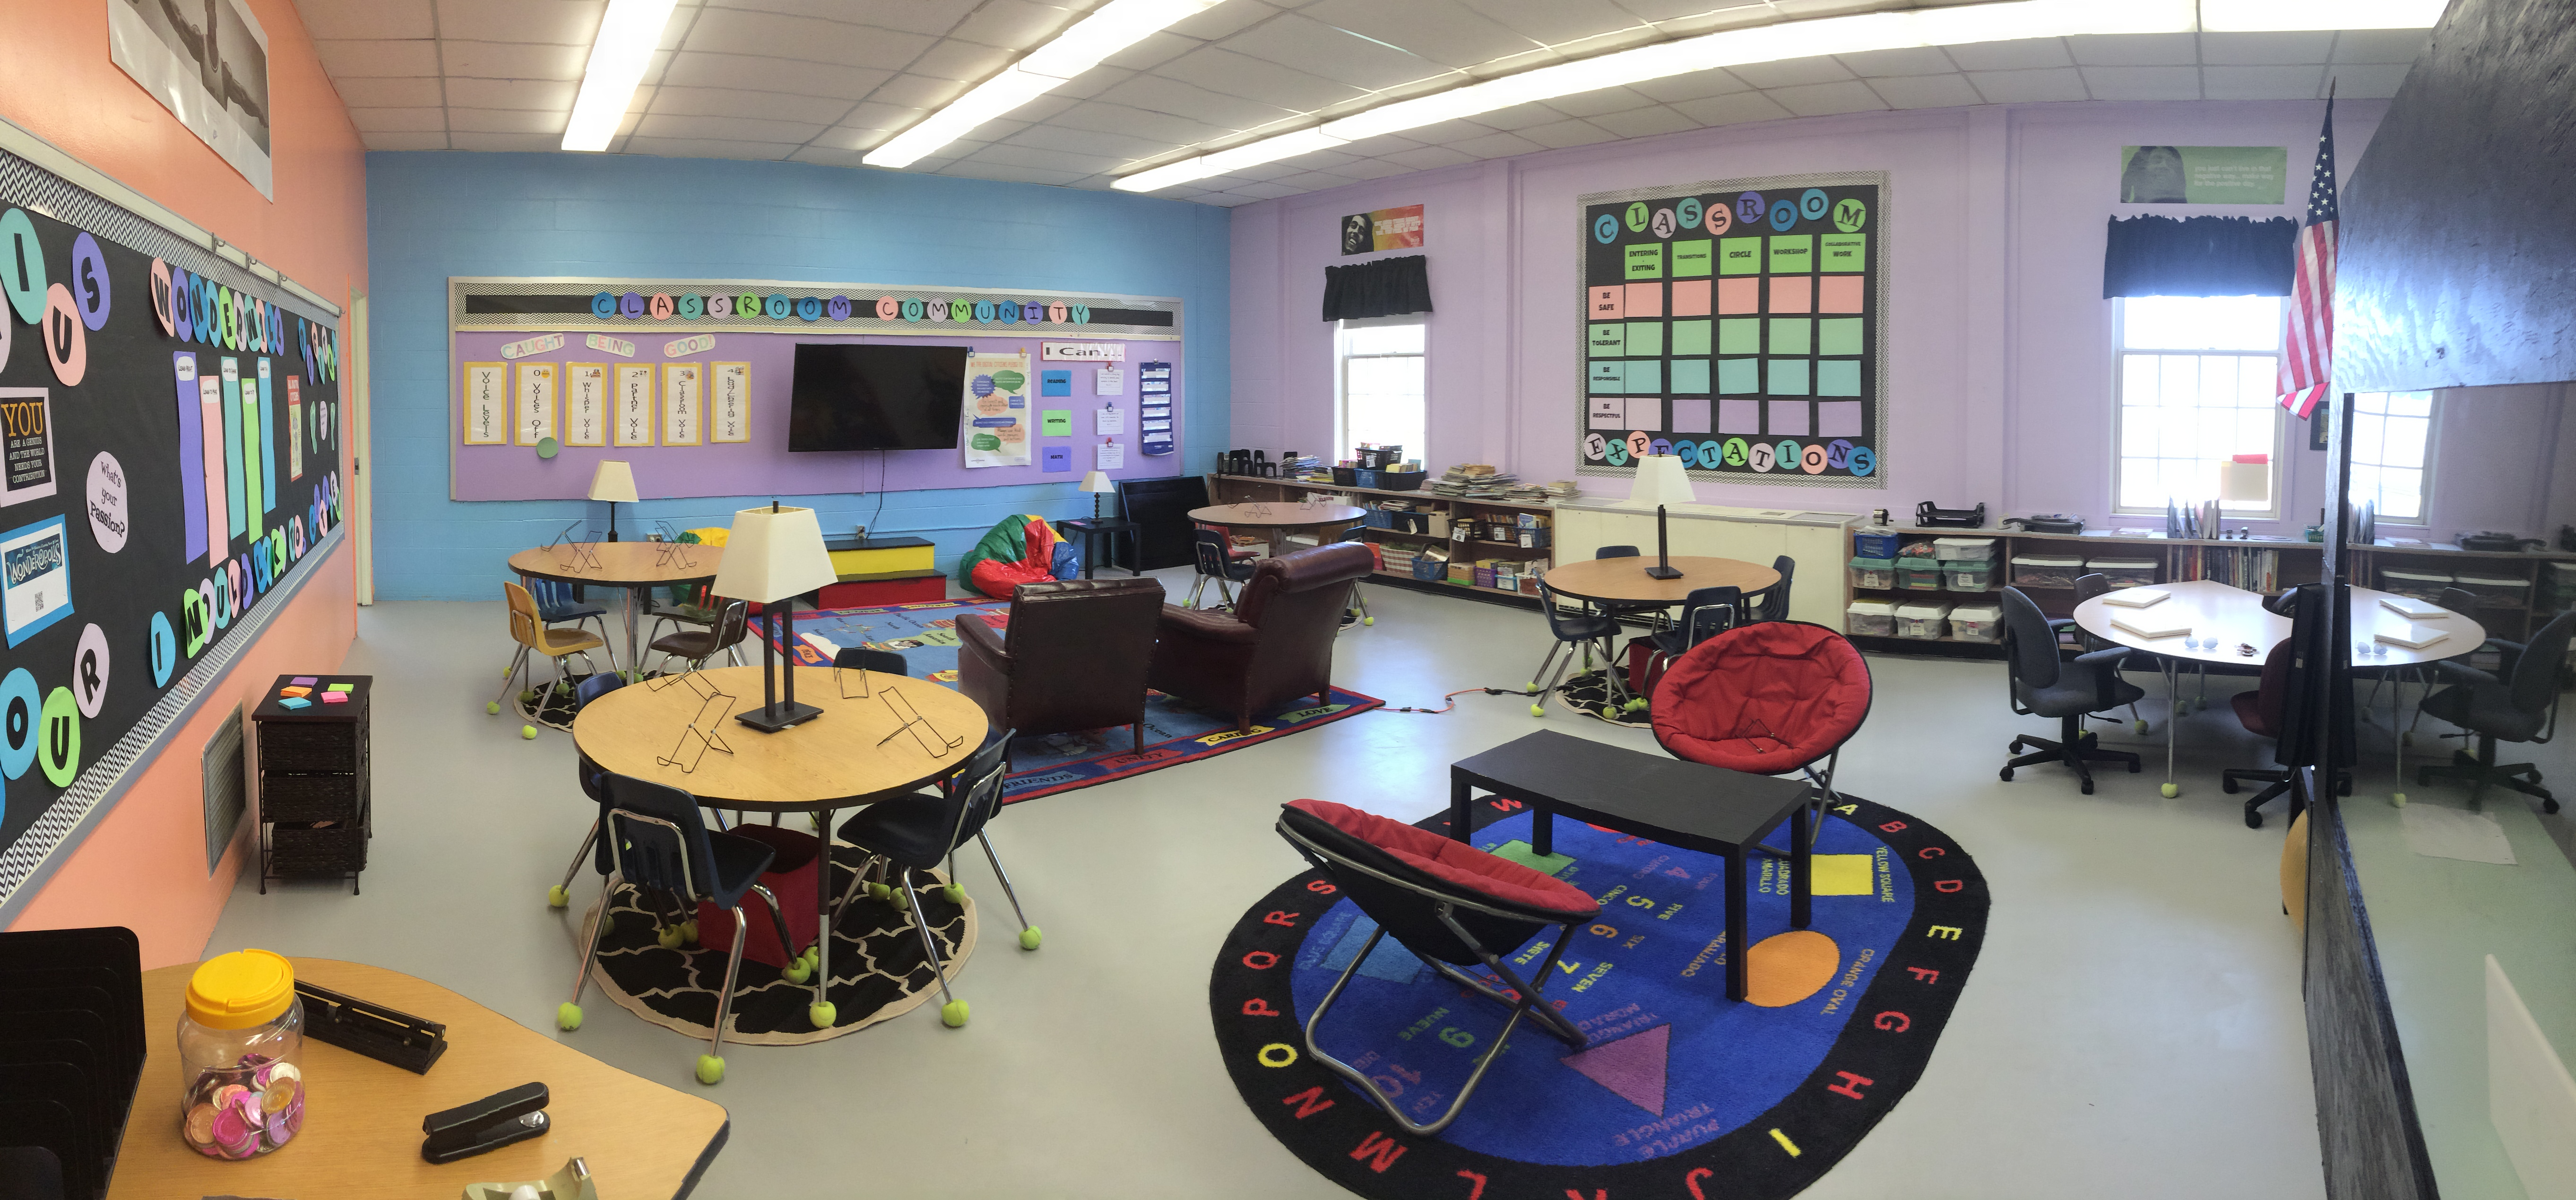 What Does An Innovative Classroom Look Like ~ Flexible learning environments part i mistercmaine